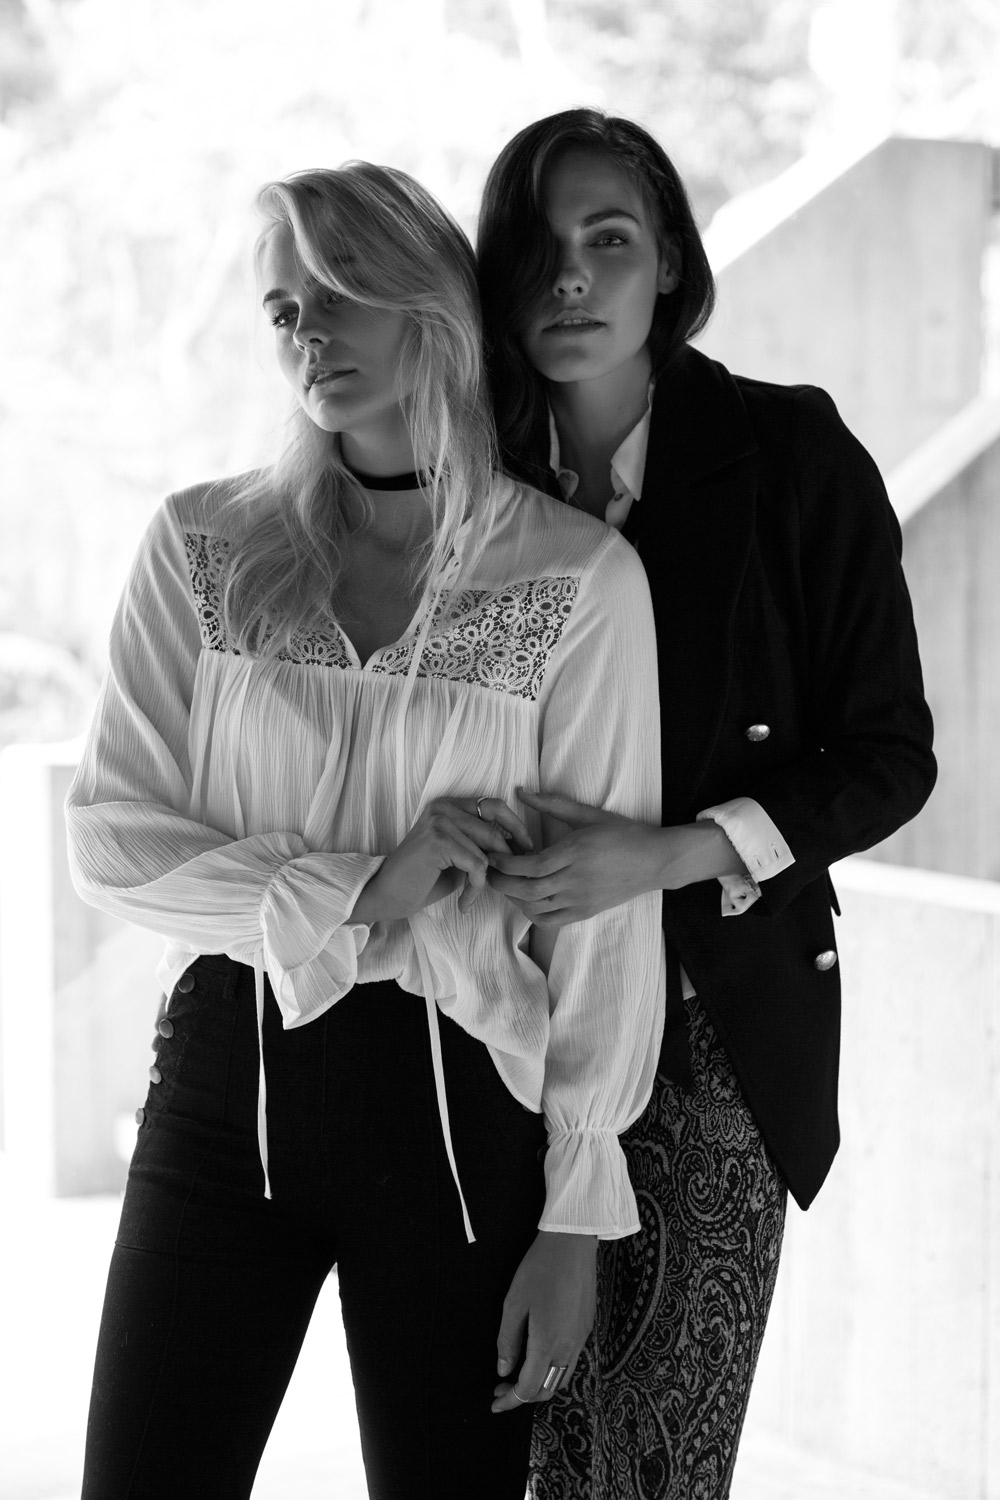 Taylah Roberts, Lola Van Horst, H&M, H&M Campaign, Fall In Love, H&M Clothes, Amanda Shadforth, Oracle Fox, Autumn Winter, AW